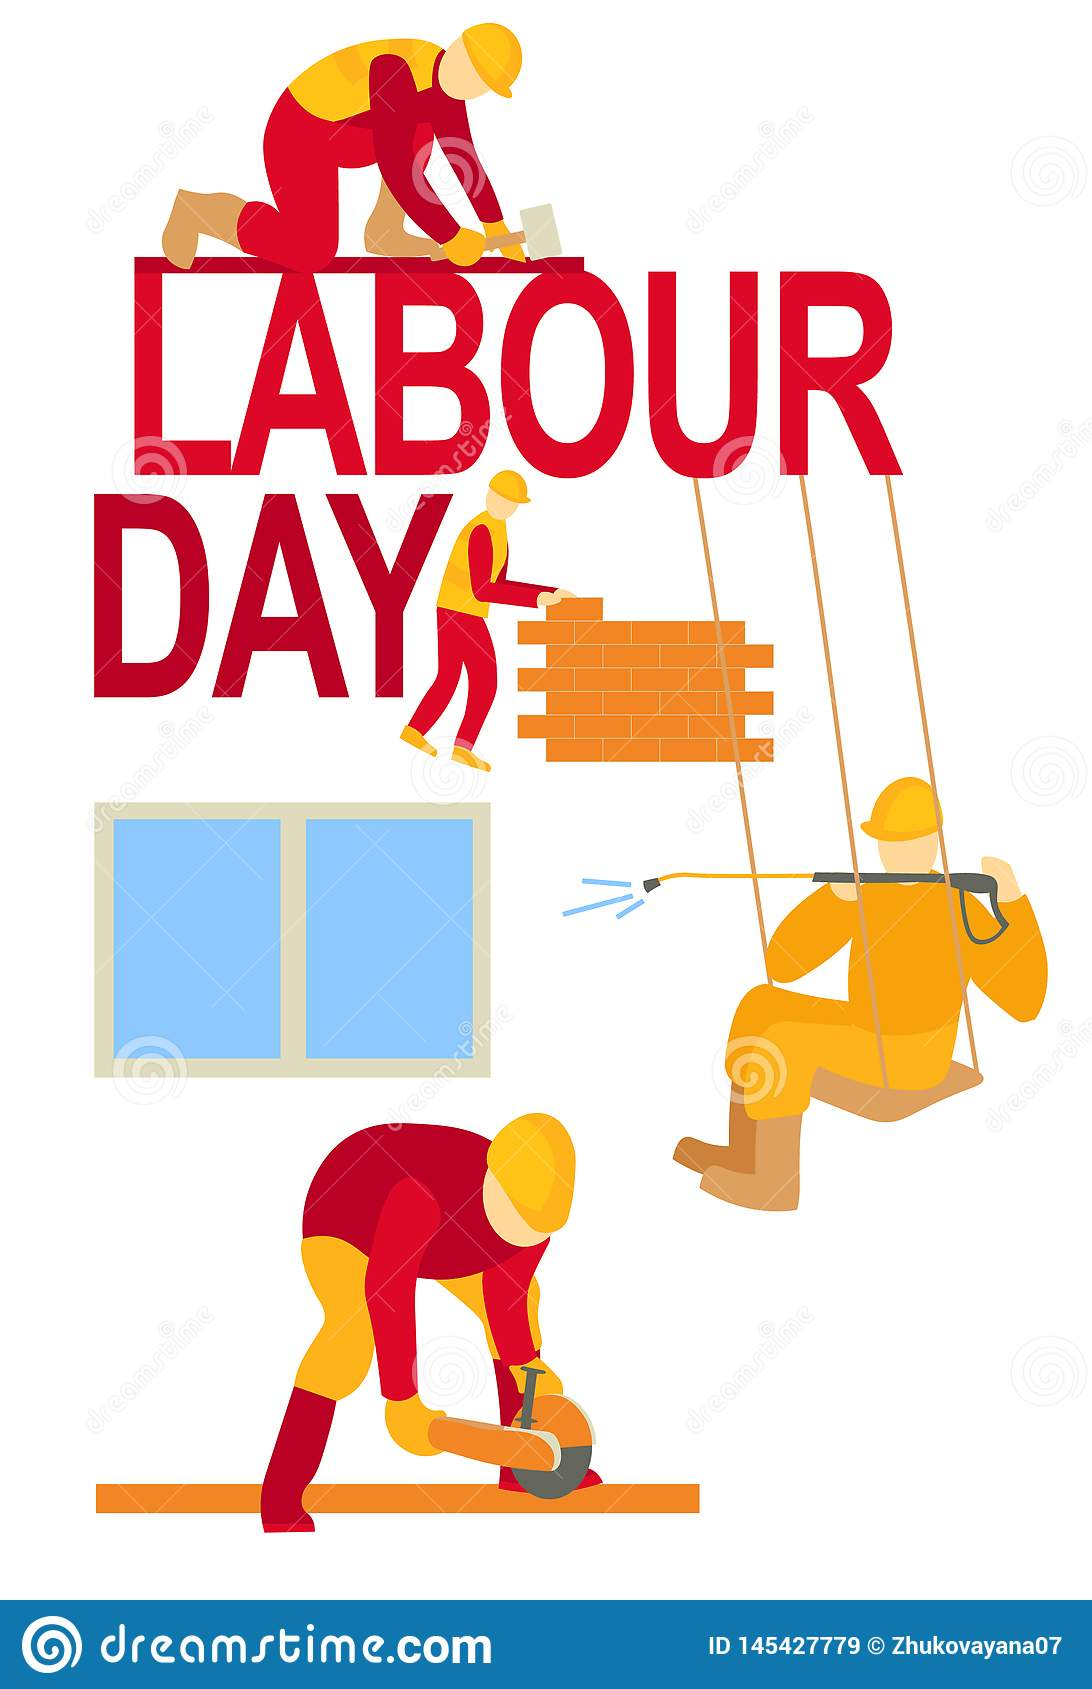 Labour day workers poster banner 1 May greeting card  illustration of Labor Day Workers in action